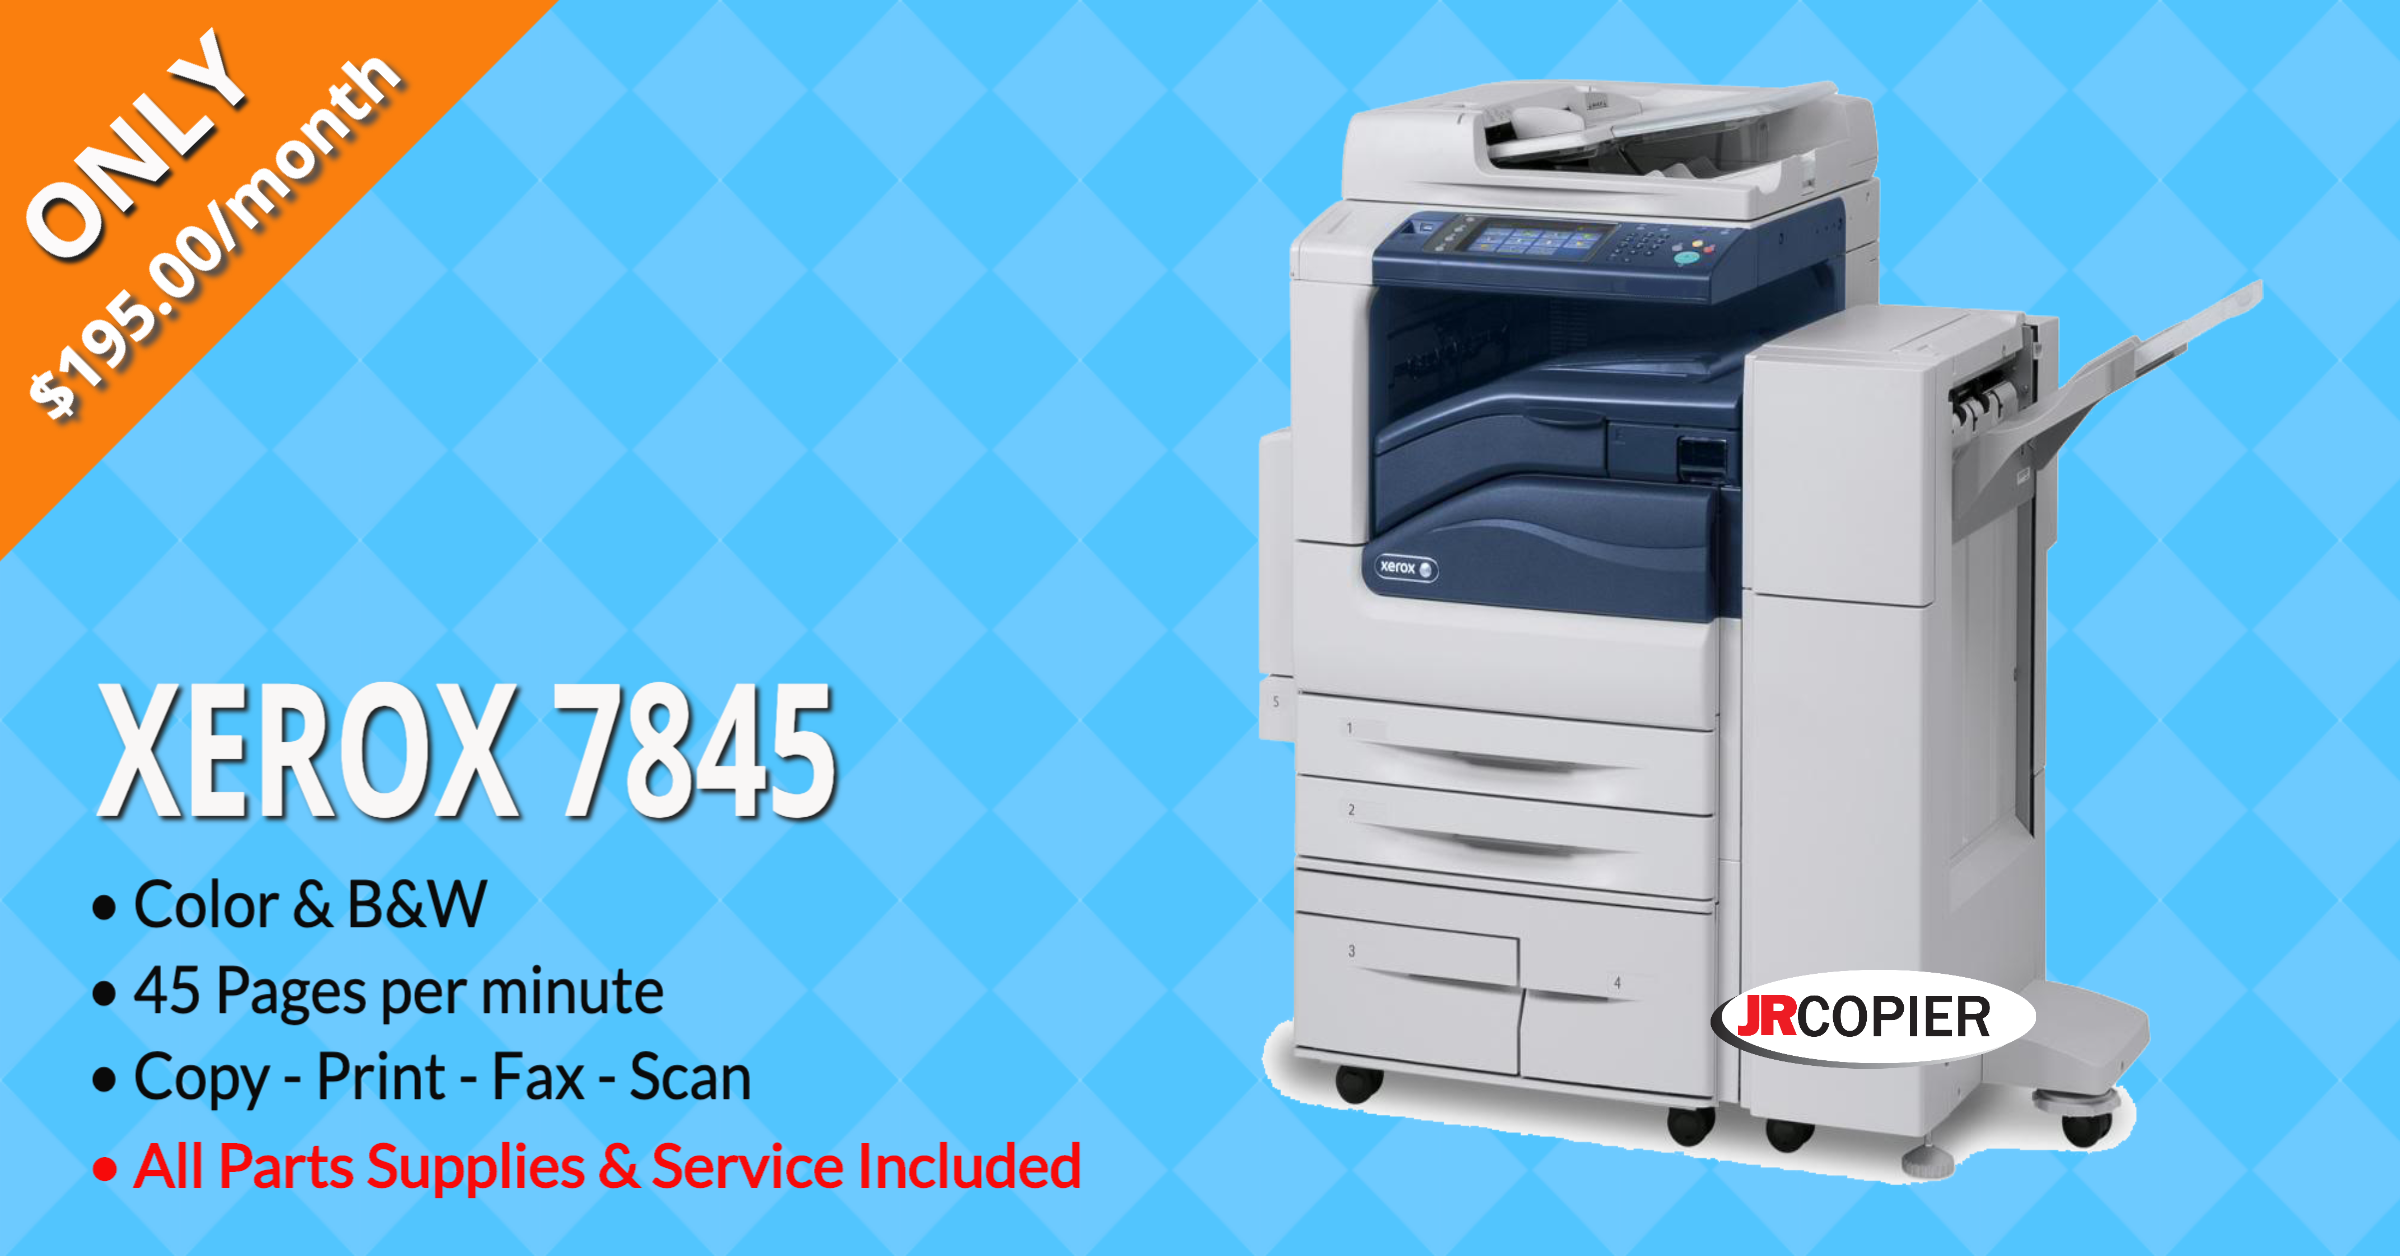 Copy Machine 47933, 47934, 47935, 47936, 47937, 47938, 47939